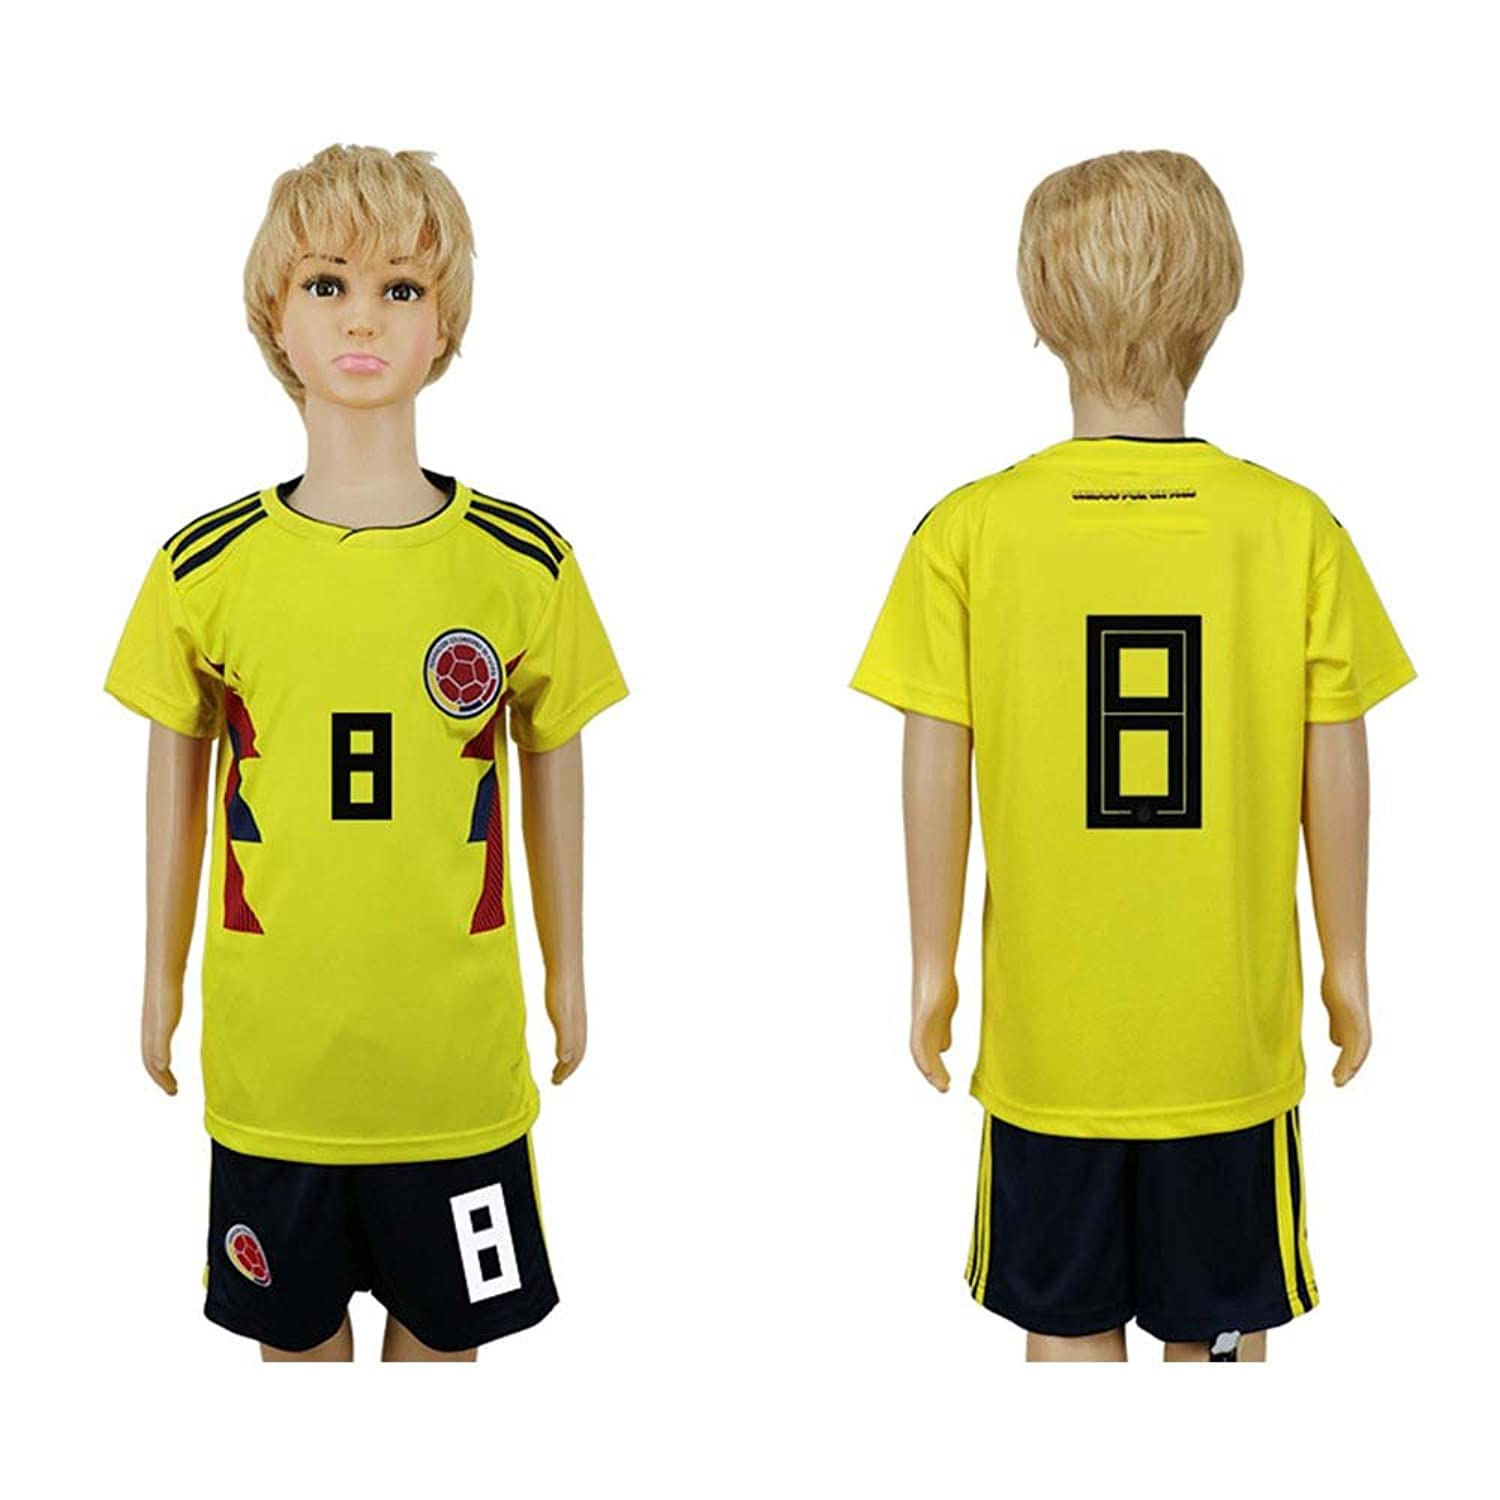 Puizozi SHIRT ボーイズ B07D3K2PCB20# (5 to 6 Years Old)